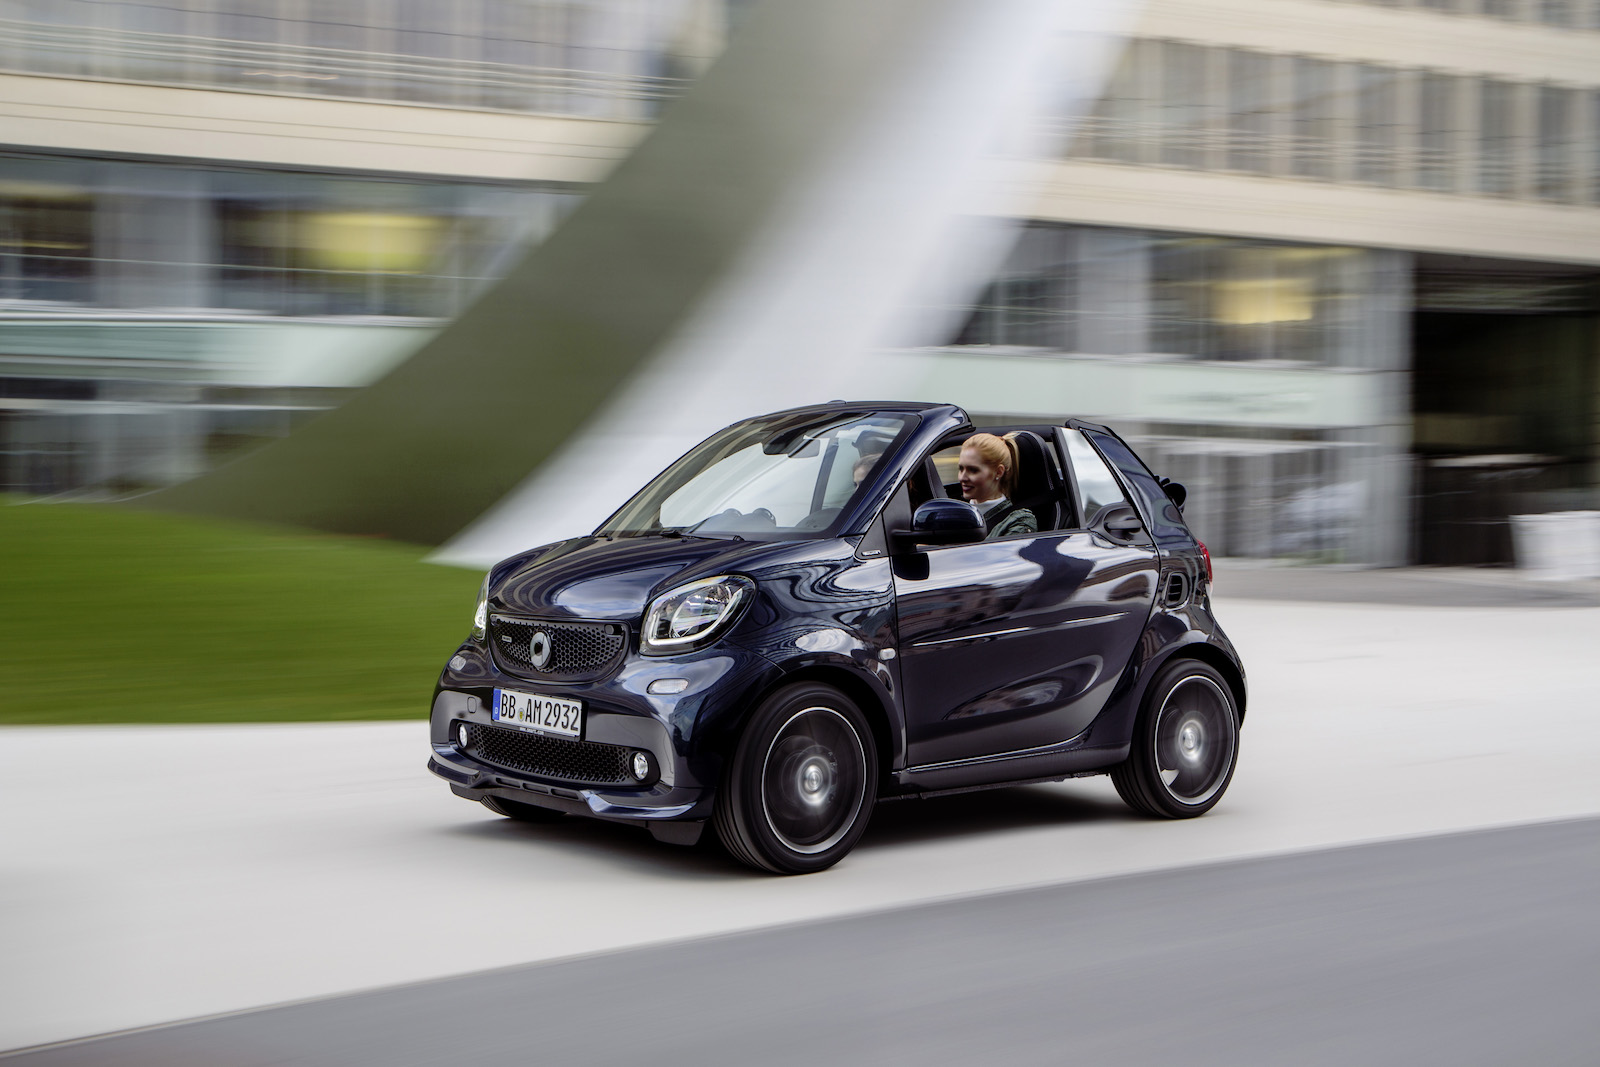 Smart 5 Portes Smart Fortwo Moves Into 2016 My With Fabric Roof Cover For The